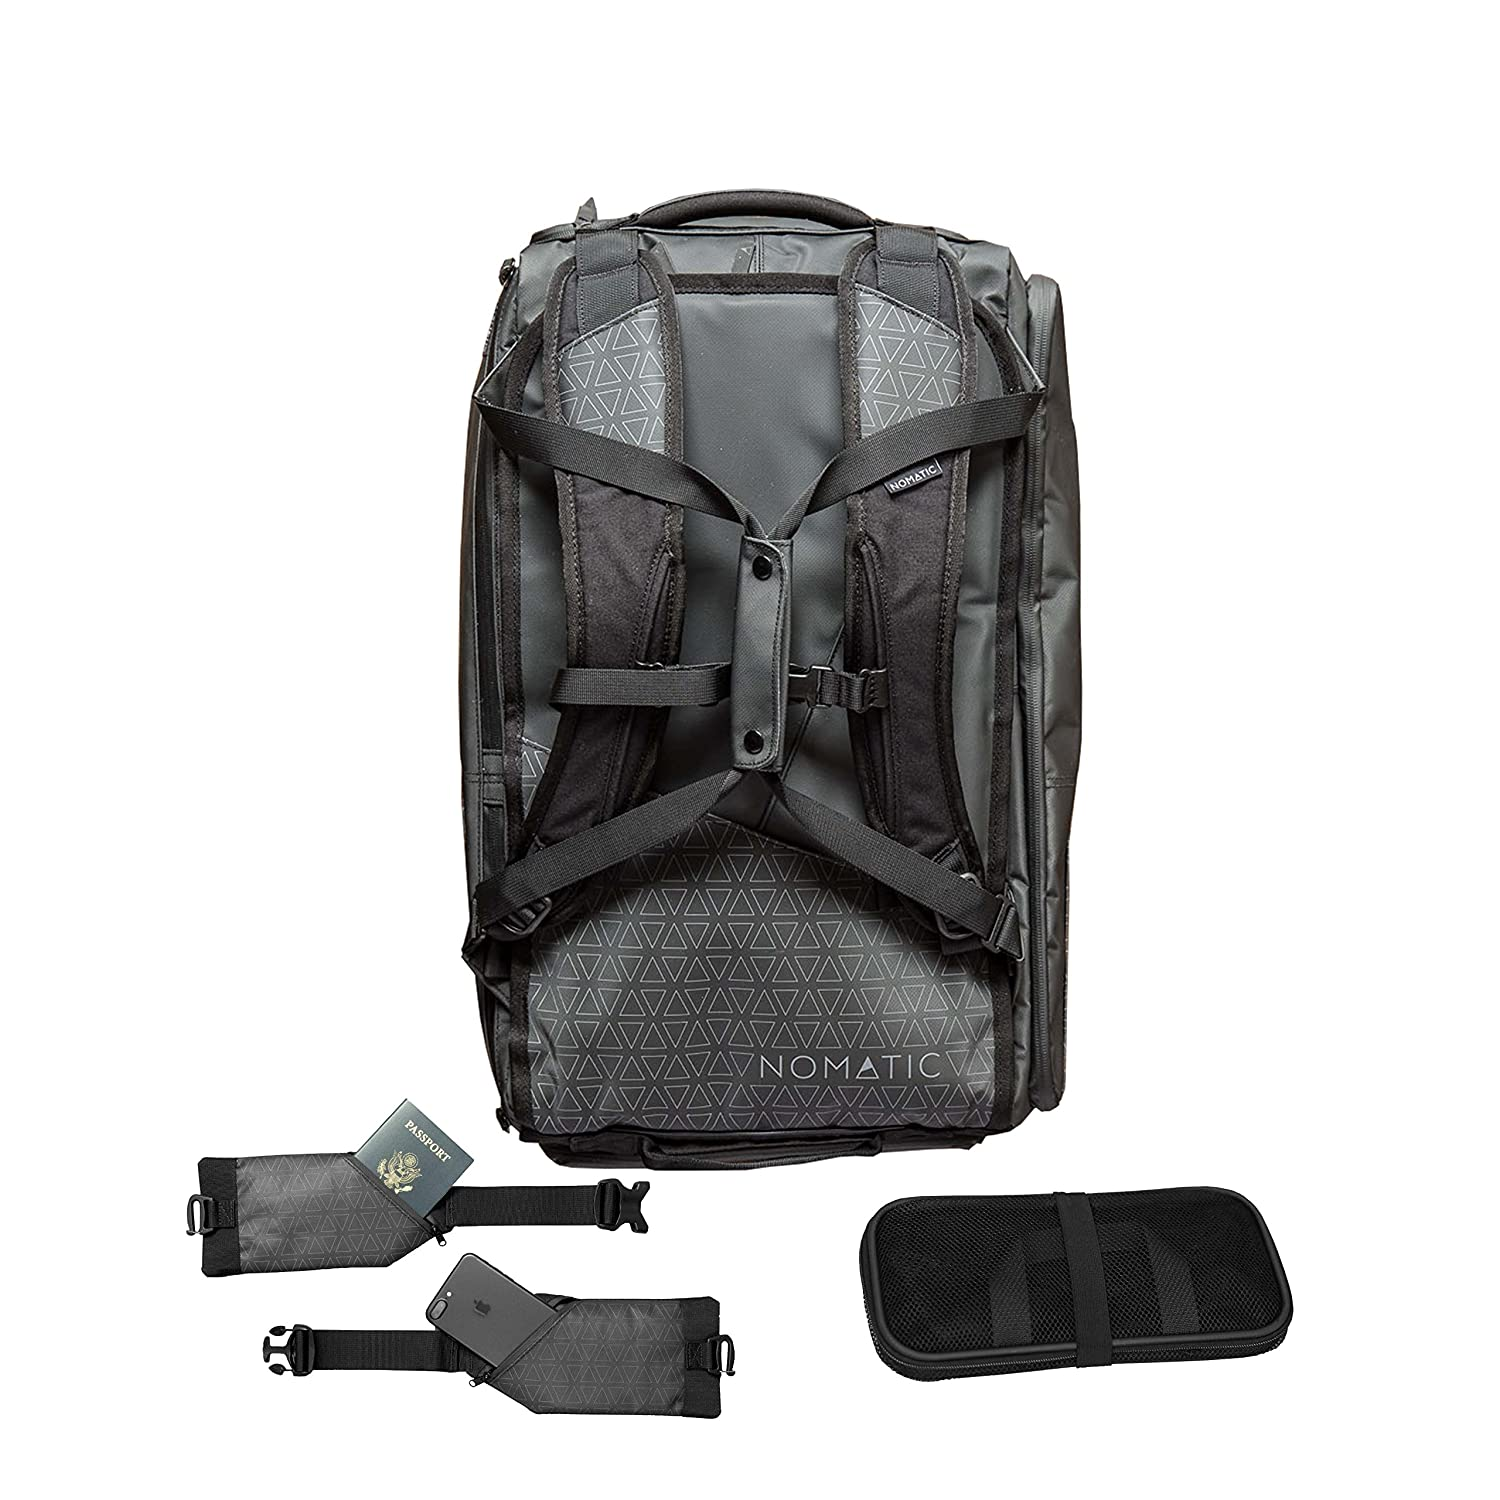 e6b2073ffcc43 Amazon.com  NOMATIC Water Resistant 40L Travel Bag - TSA Checkpoint  Compliant Duffel Backpack - Built in Laptop and Tablet Sleeve  Clothing